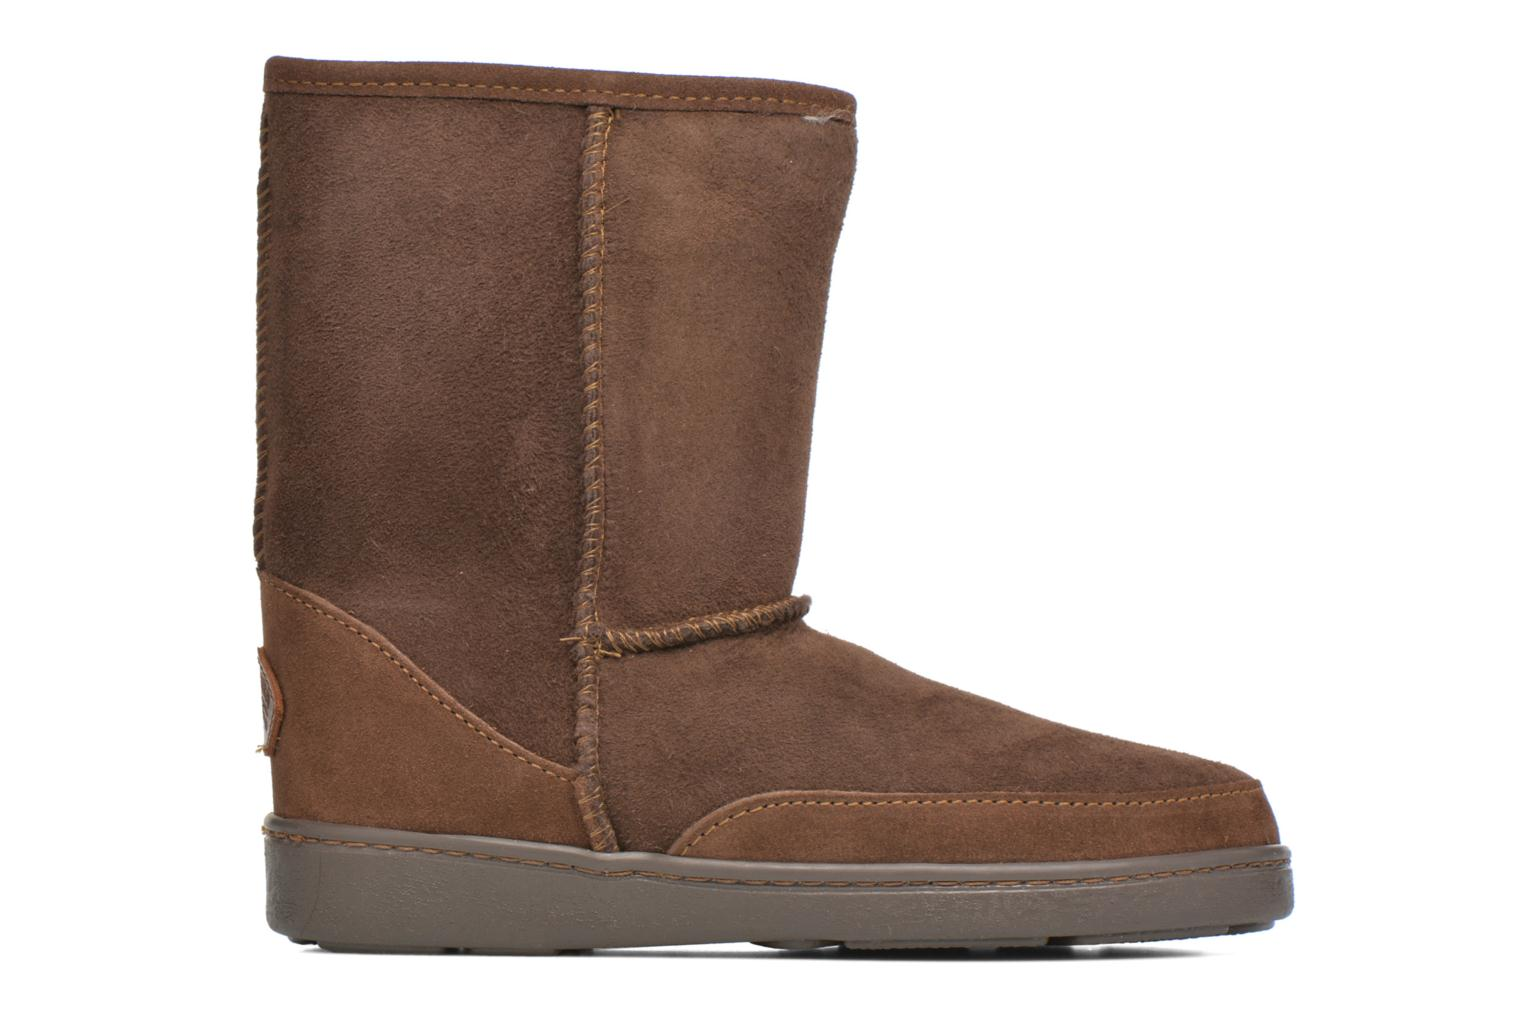 Bottines et boots Minnetonka Short Sheepskin Pug Boot W Marron vue derrière